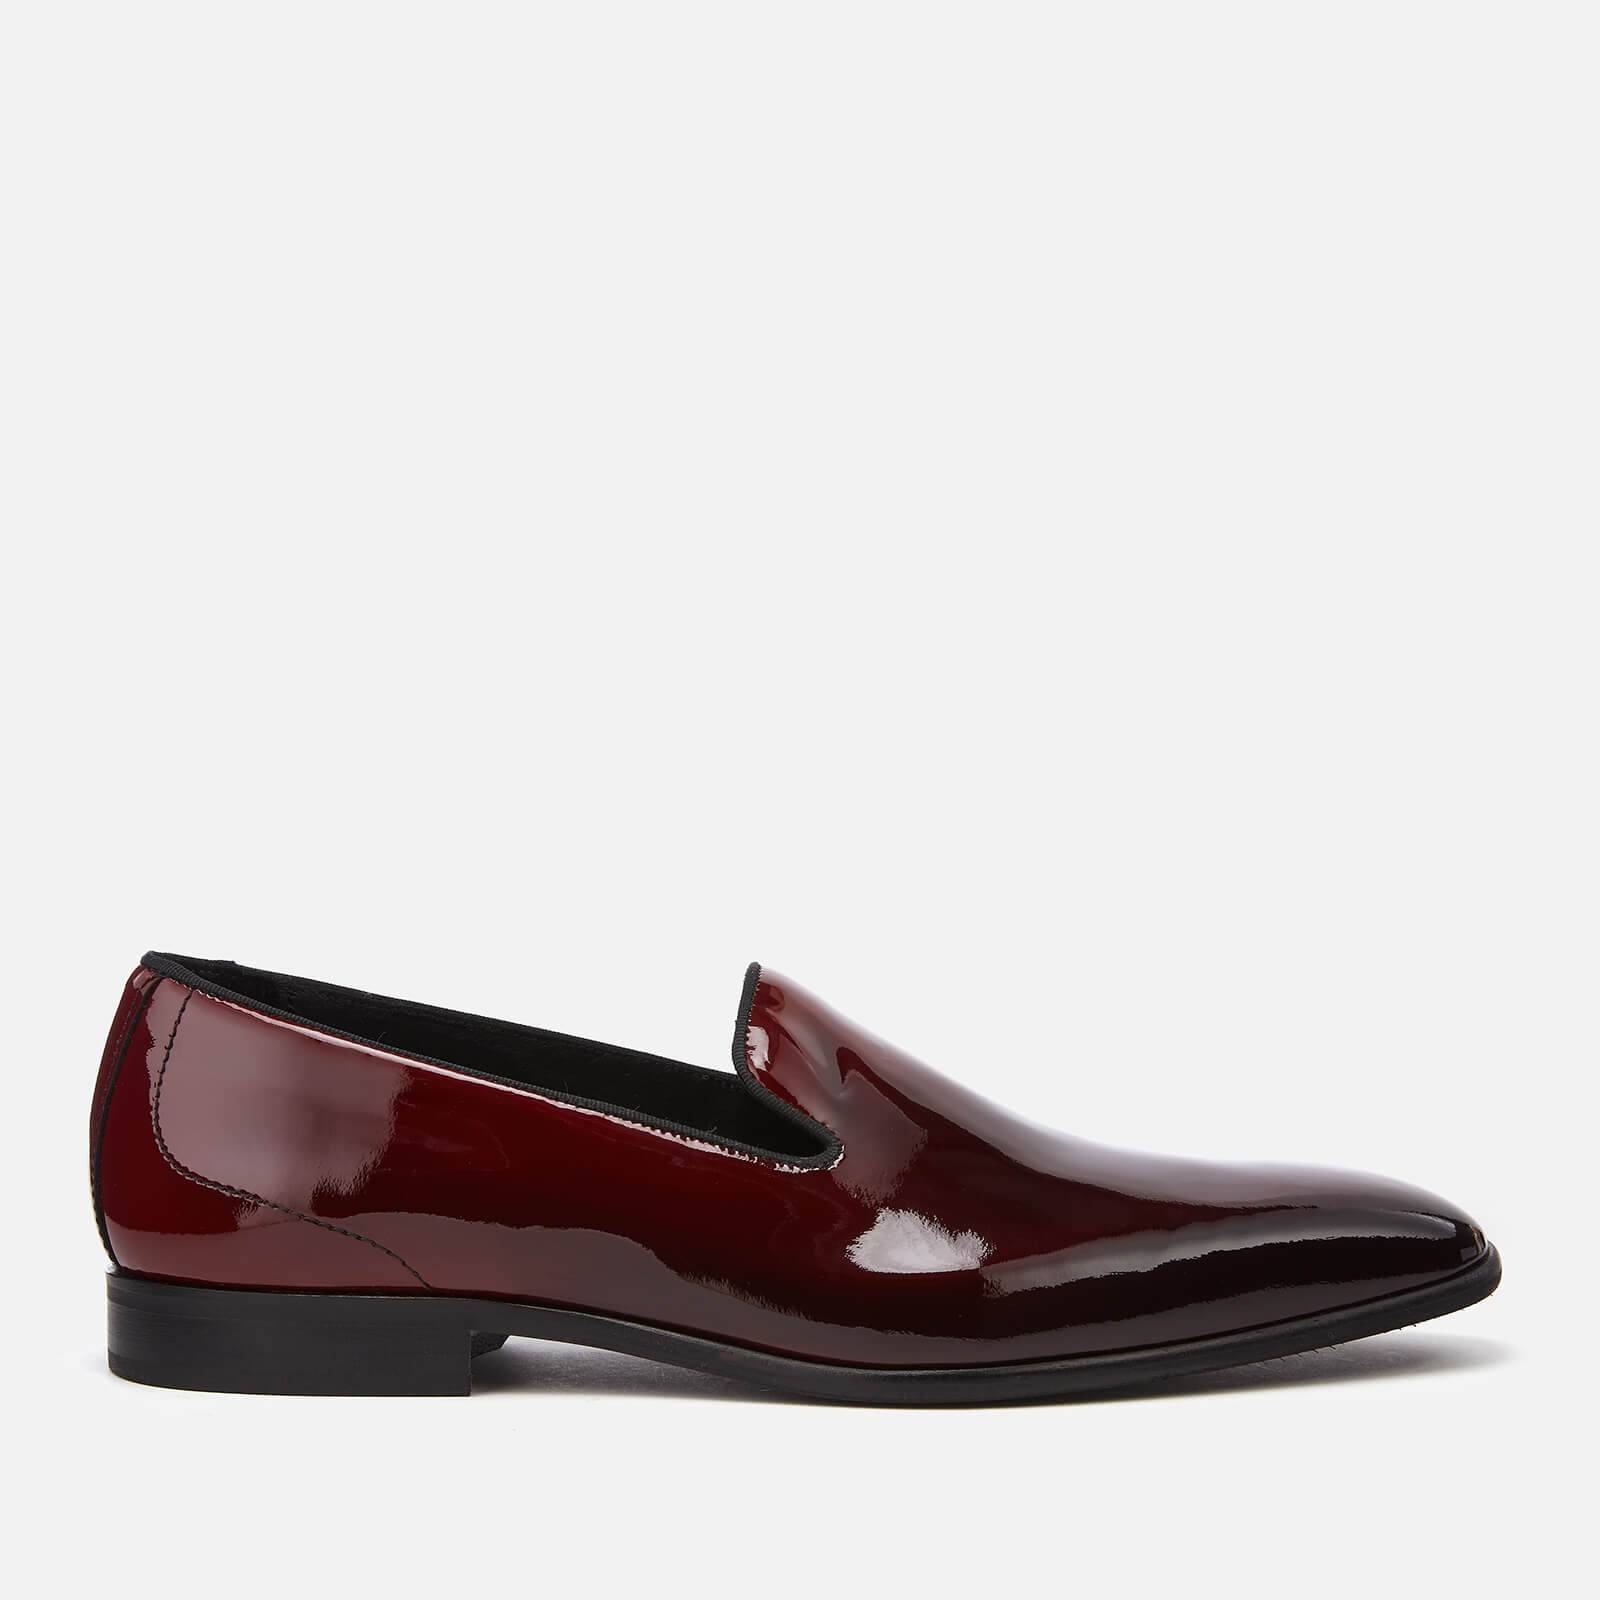 Kurt Geiger London Men's Radleigh Leather Loafers - Black/Red - UK 8 - Black/Red